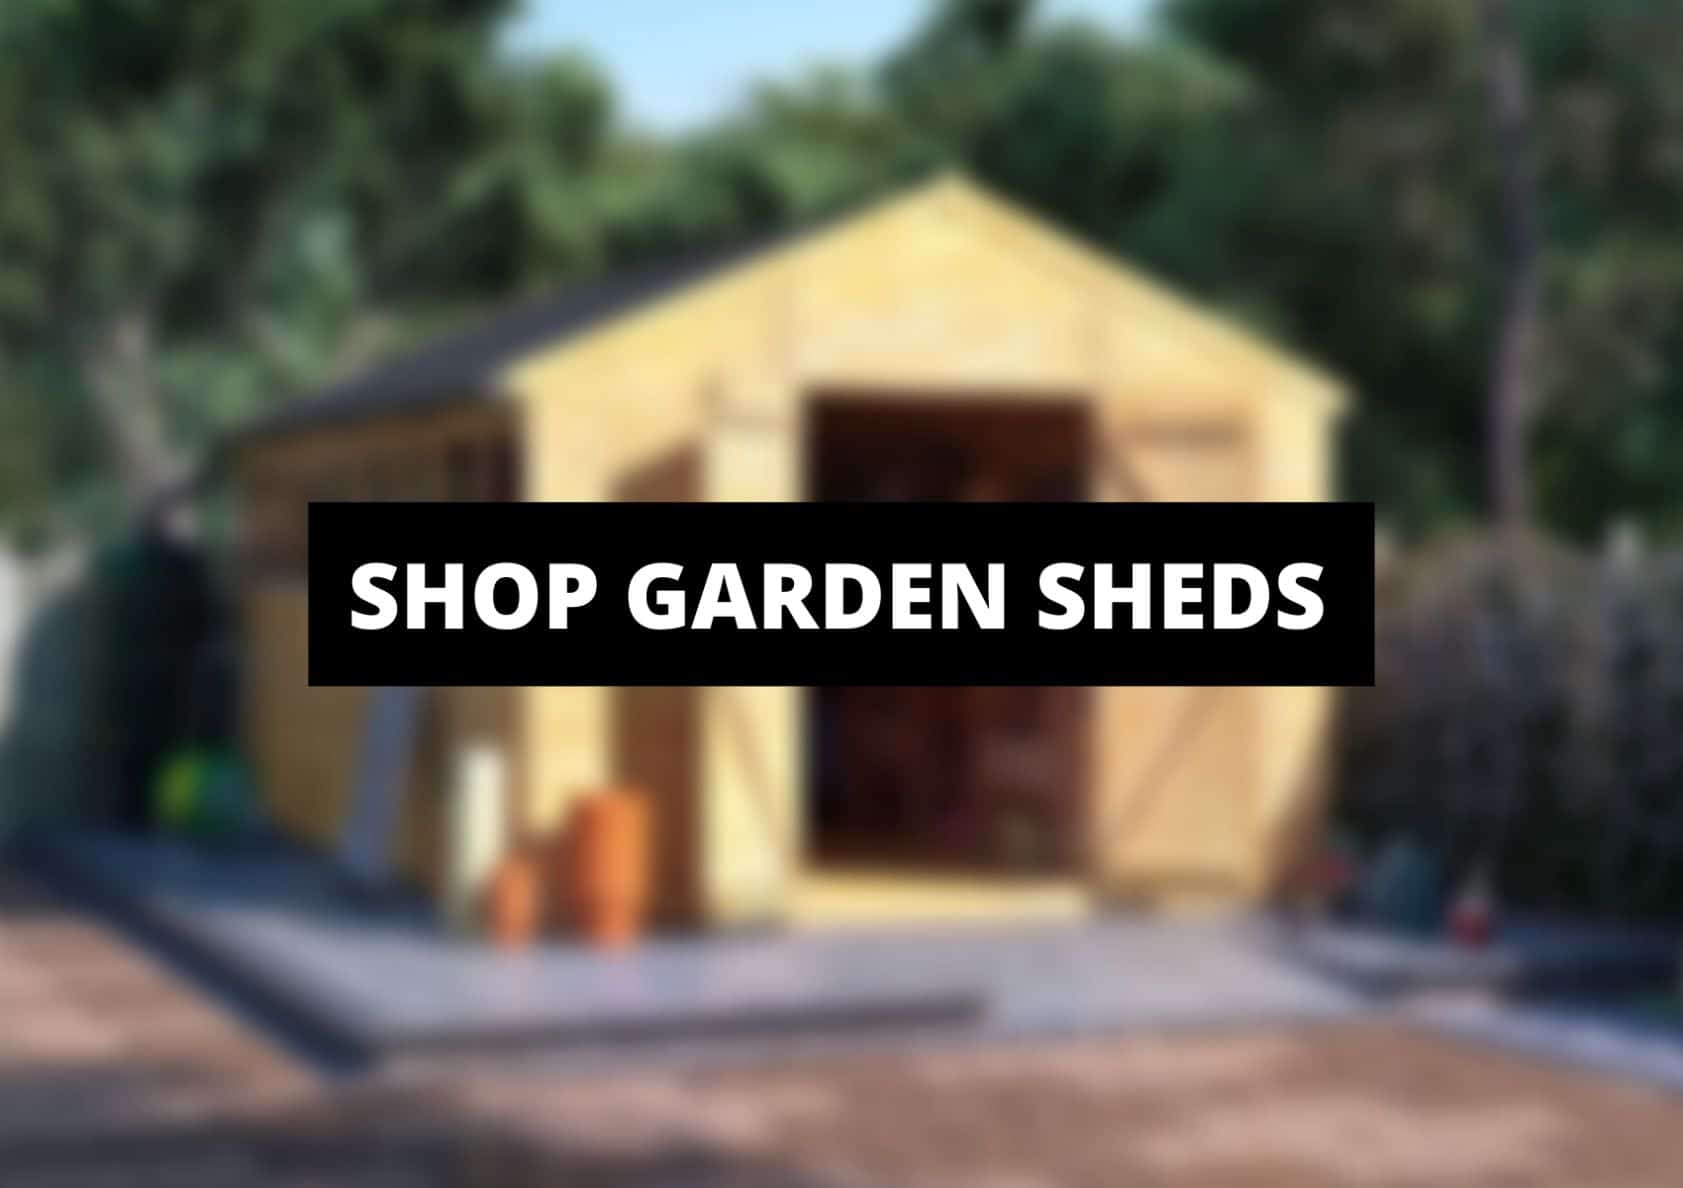 shop-garden-sheds-button